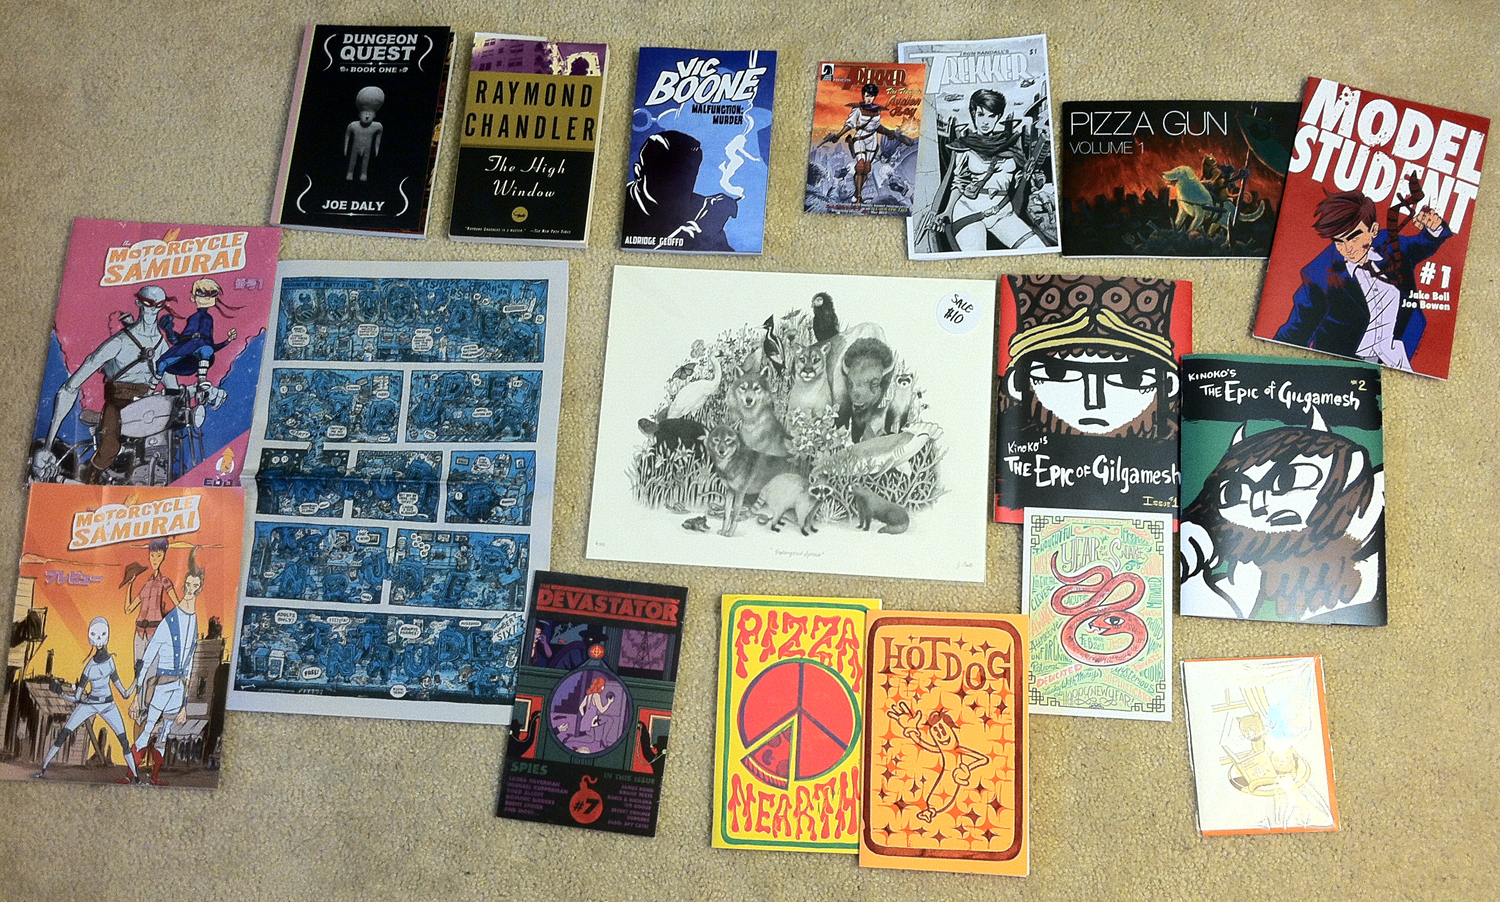 STCF 2013: The Haul